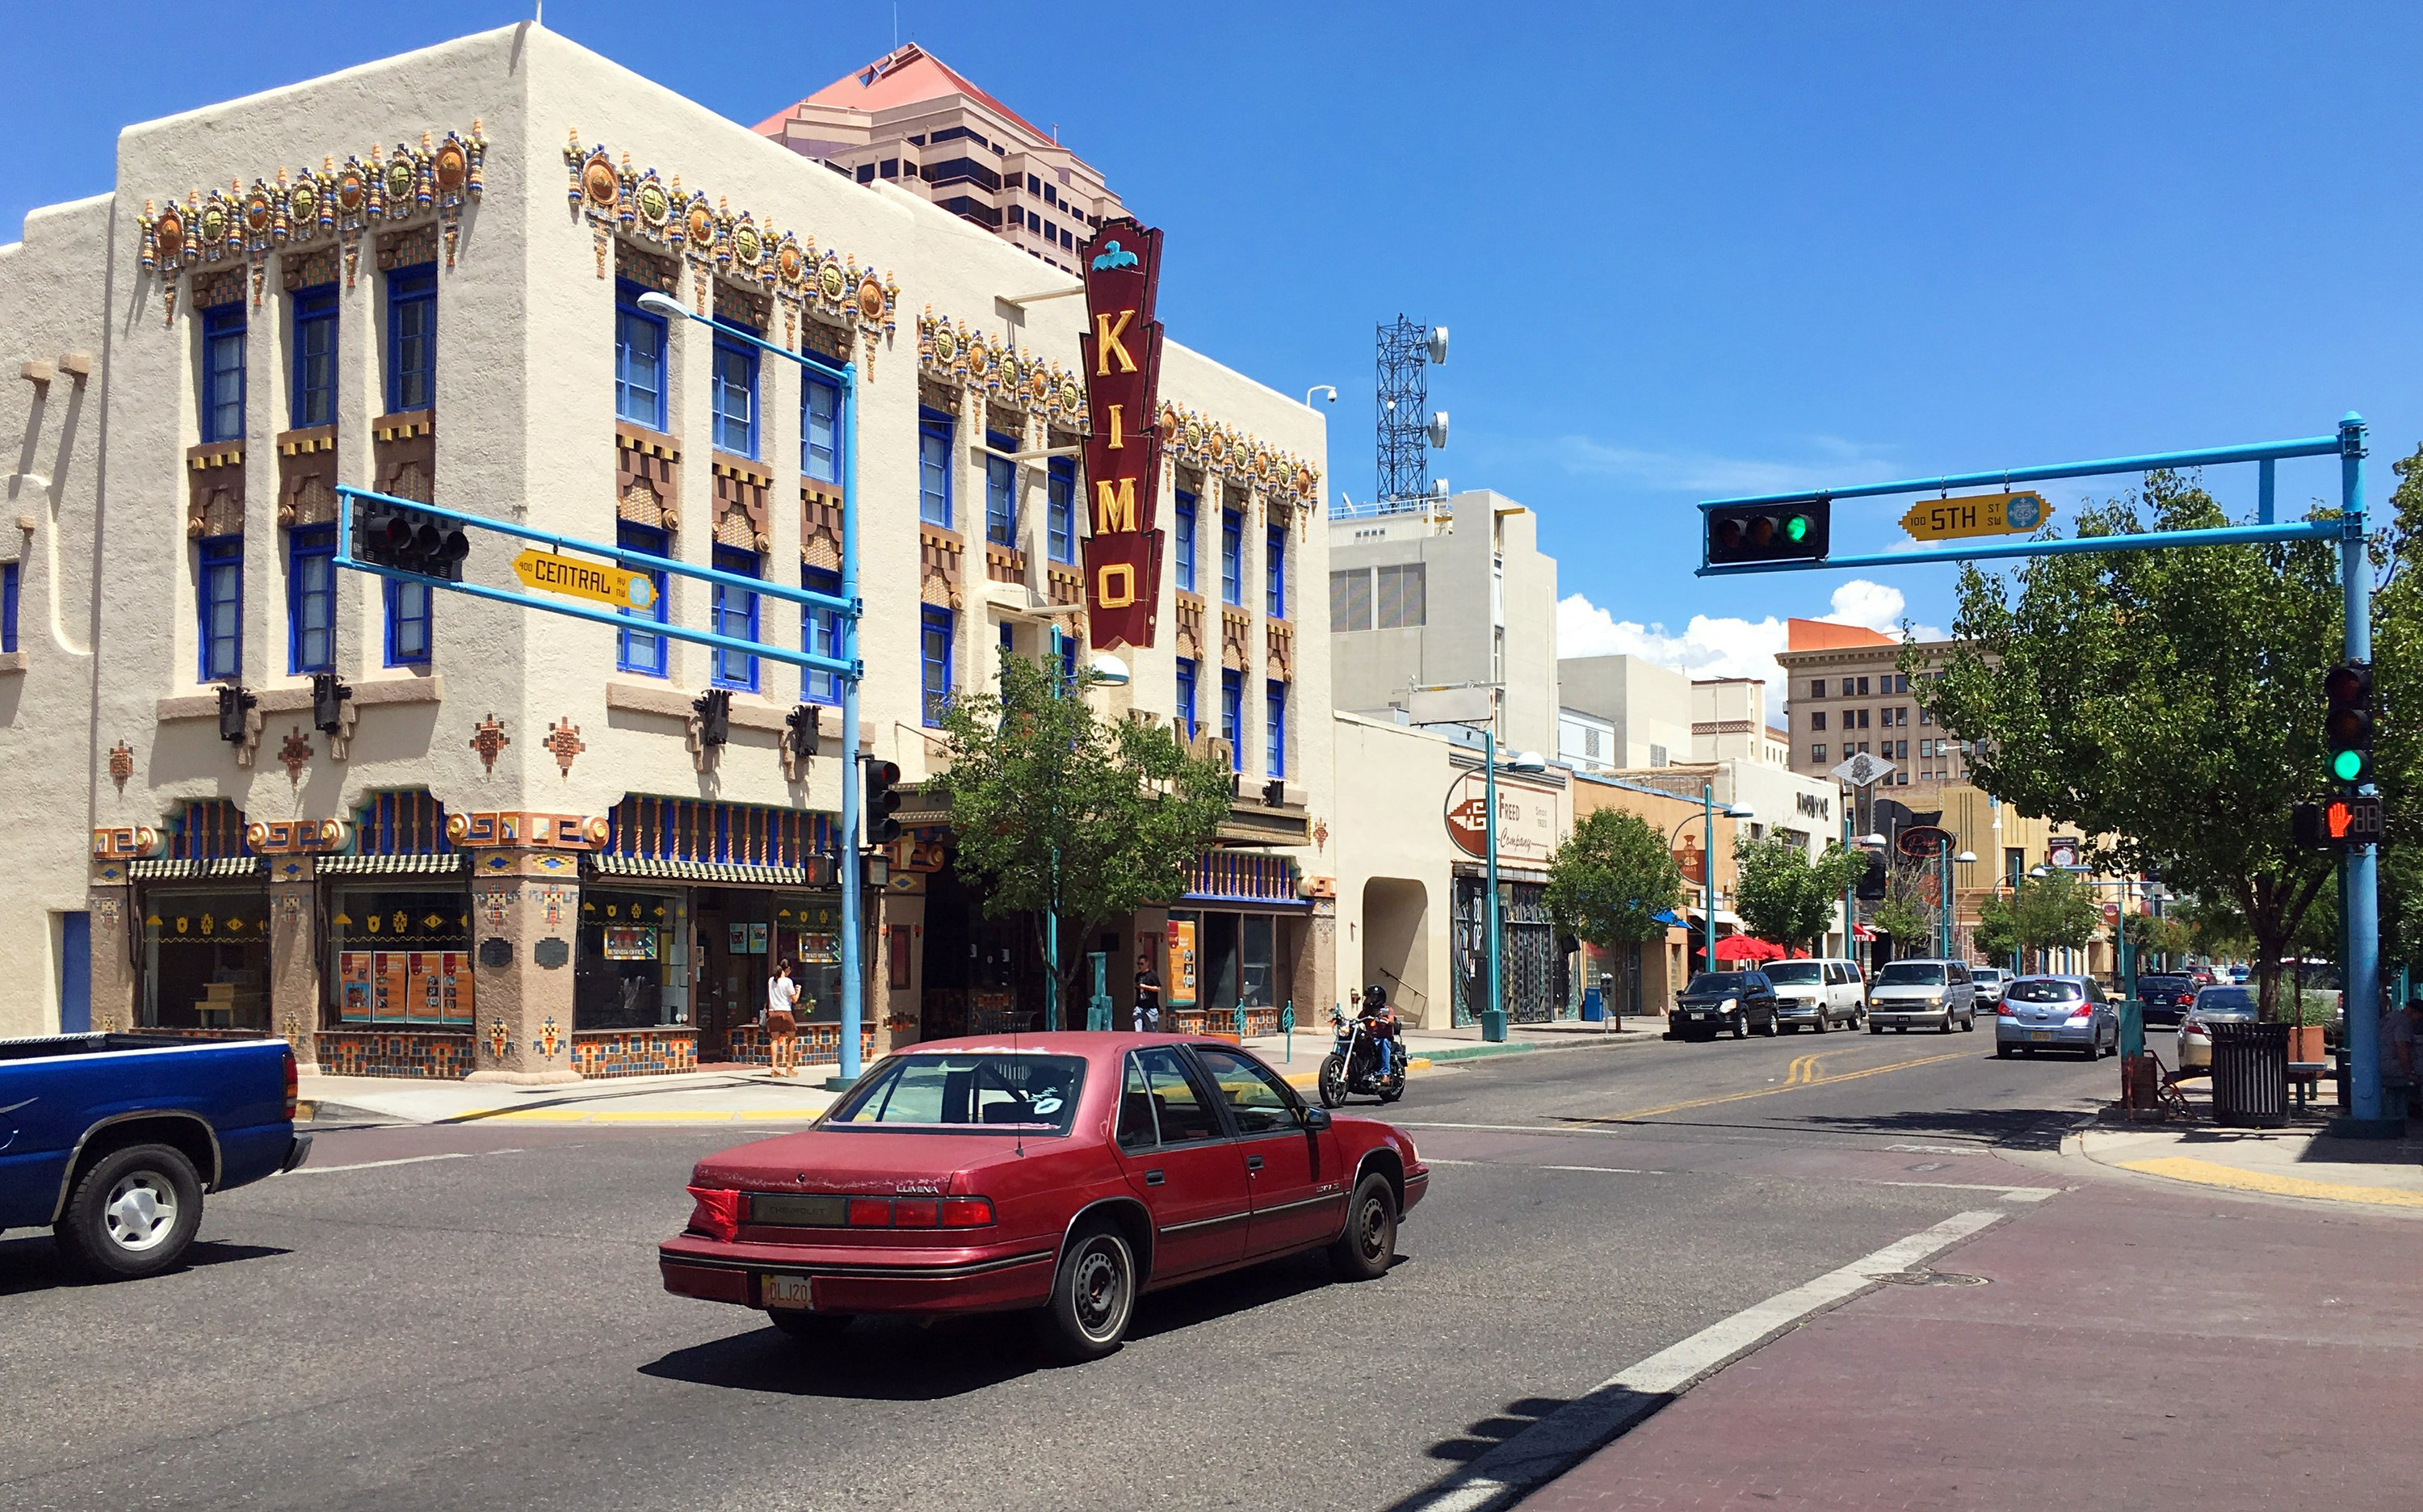 16 New Mexico towns, cities eye more 'Main Street' funds